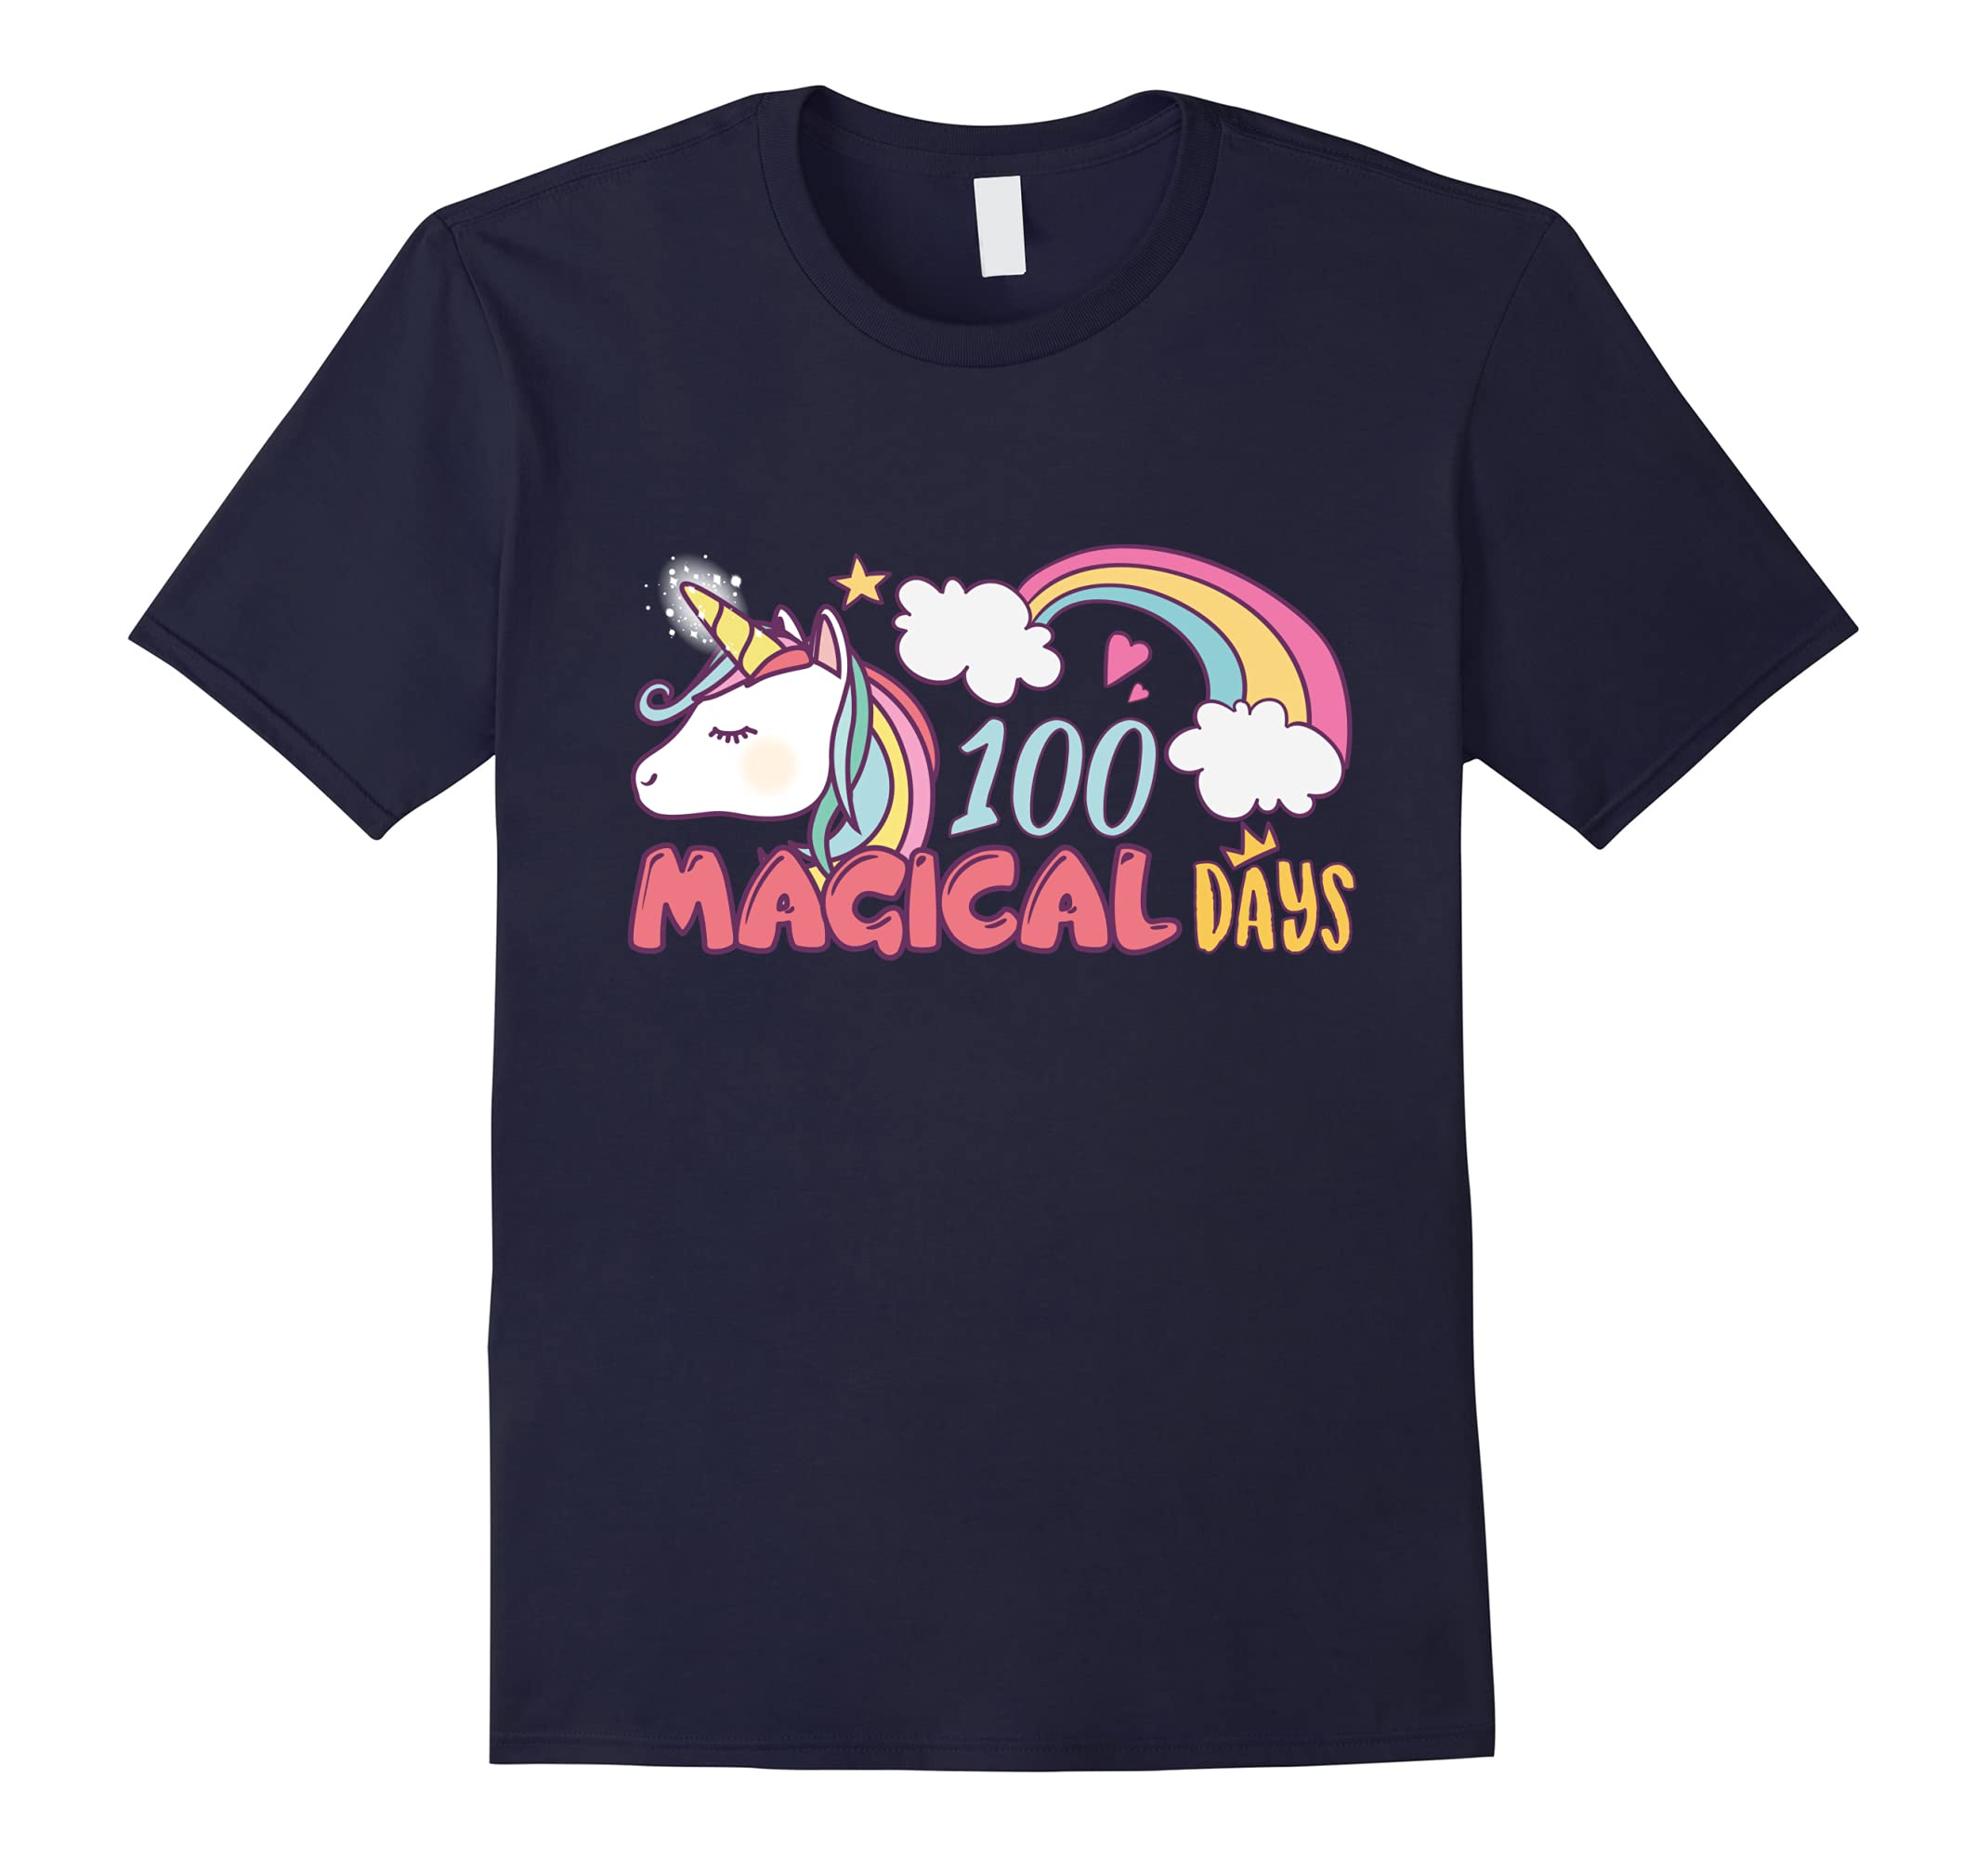 100th Day Of School Unicorn Funny Shirt Kids Girls Student-ah my shirt one gift